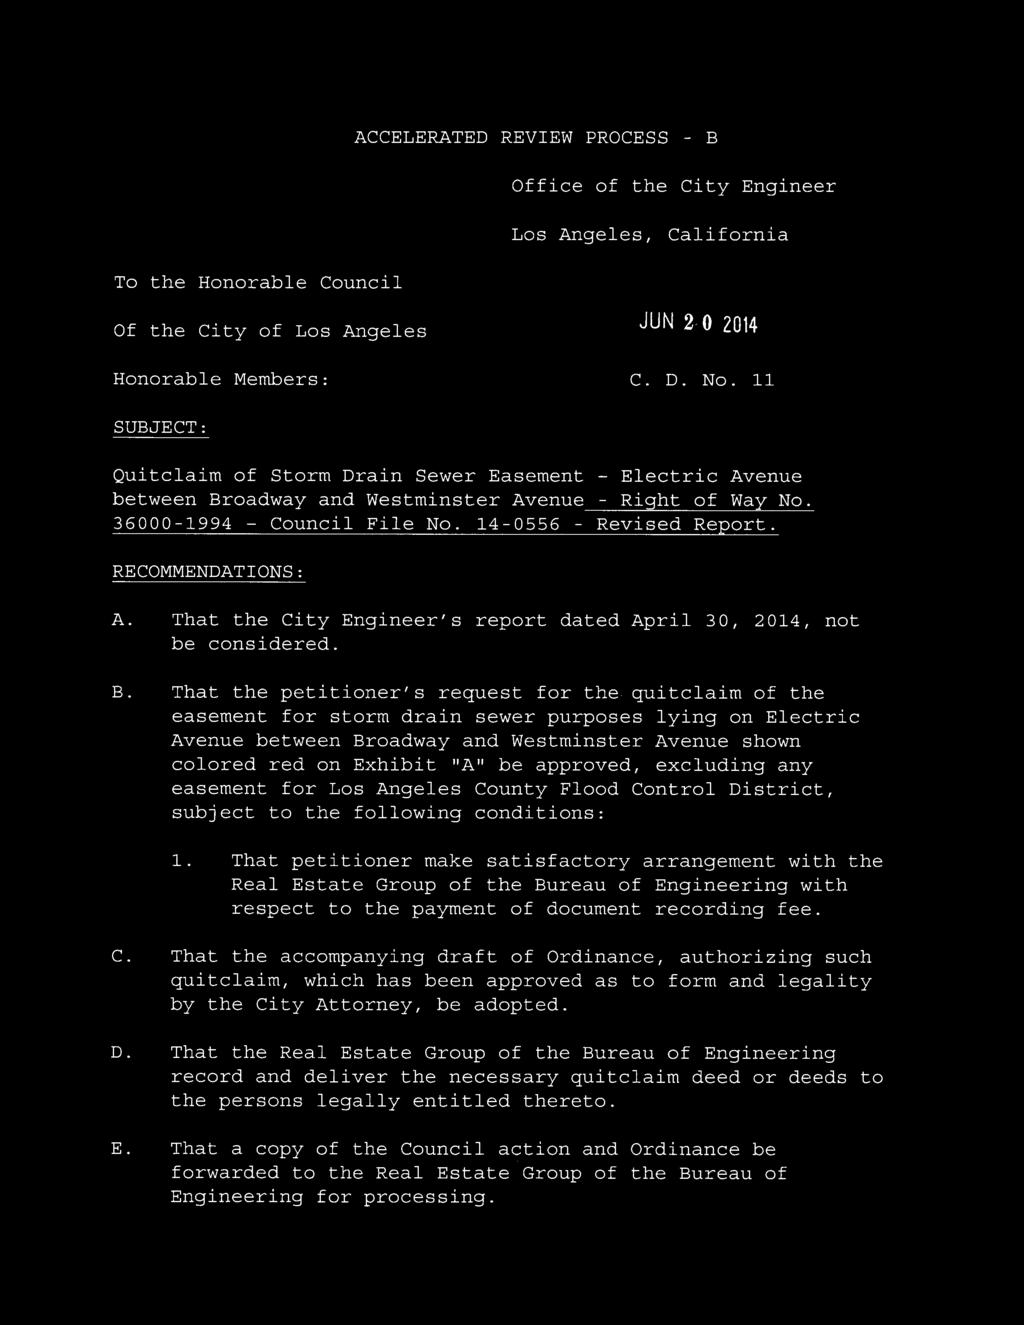 RECOMMENDATIONS: A. That the City Engineer's report dated April 30, 2014, not be considered. B.